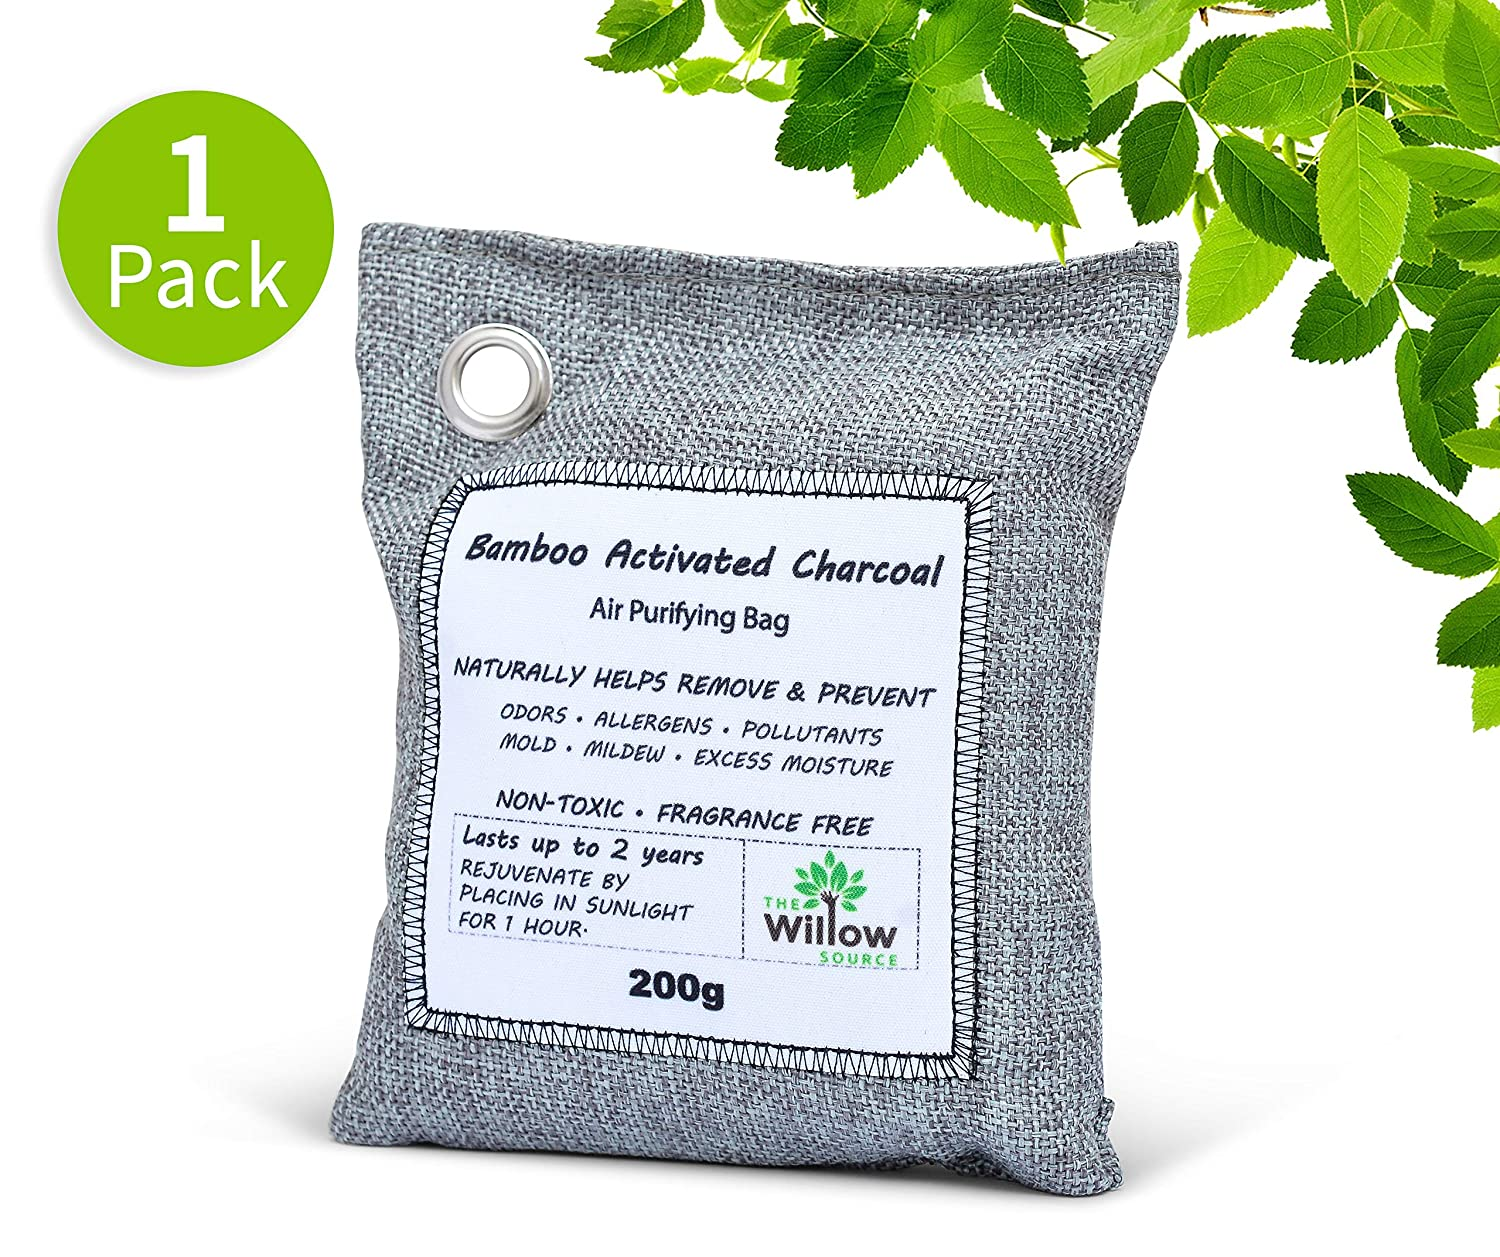 Willow Source Air Purifying Bags - All Natural - Bamboo Activated Charcoal Deodorizer - Unscented Air Freshener, Odor Eliminator, Car Air Freshener, Absorbs Moisture (4)